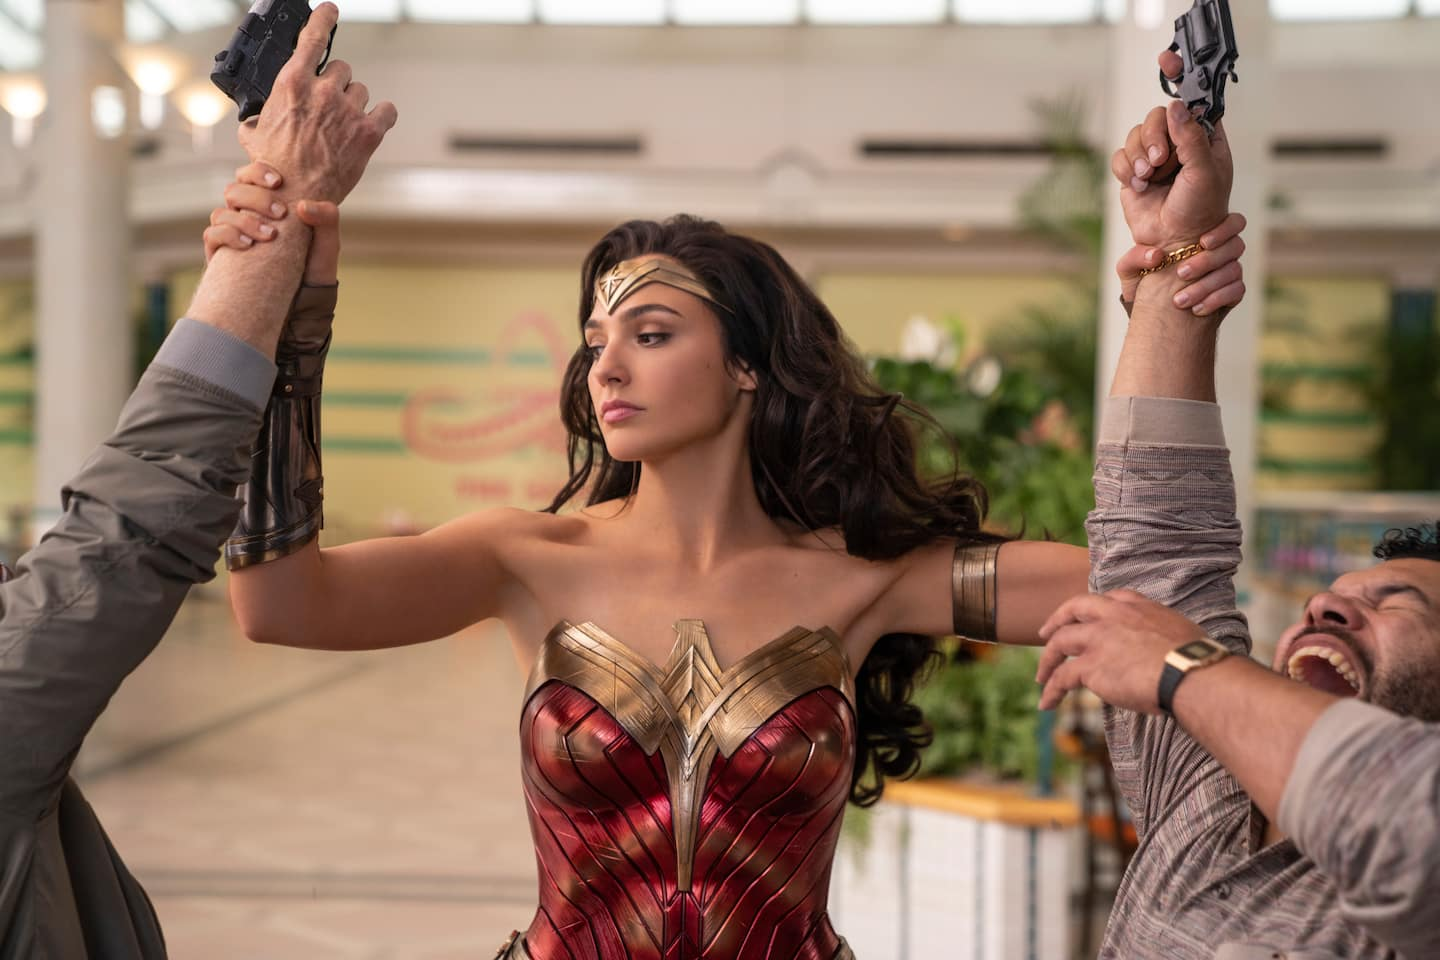 Wonder Woman survives a pandemic and polarizing reactions to remain one of the top superhero franchises